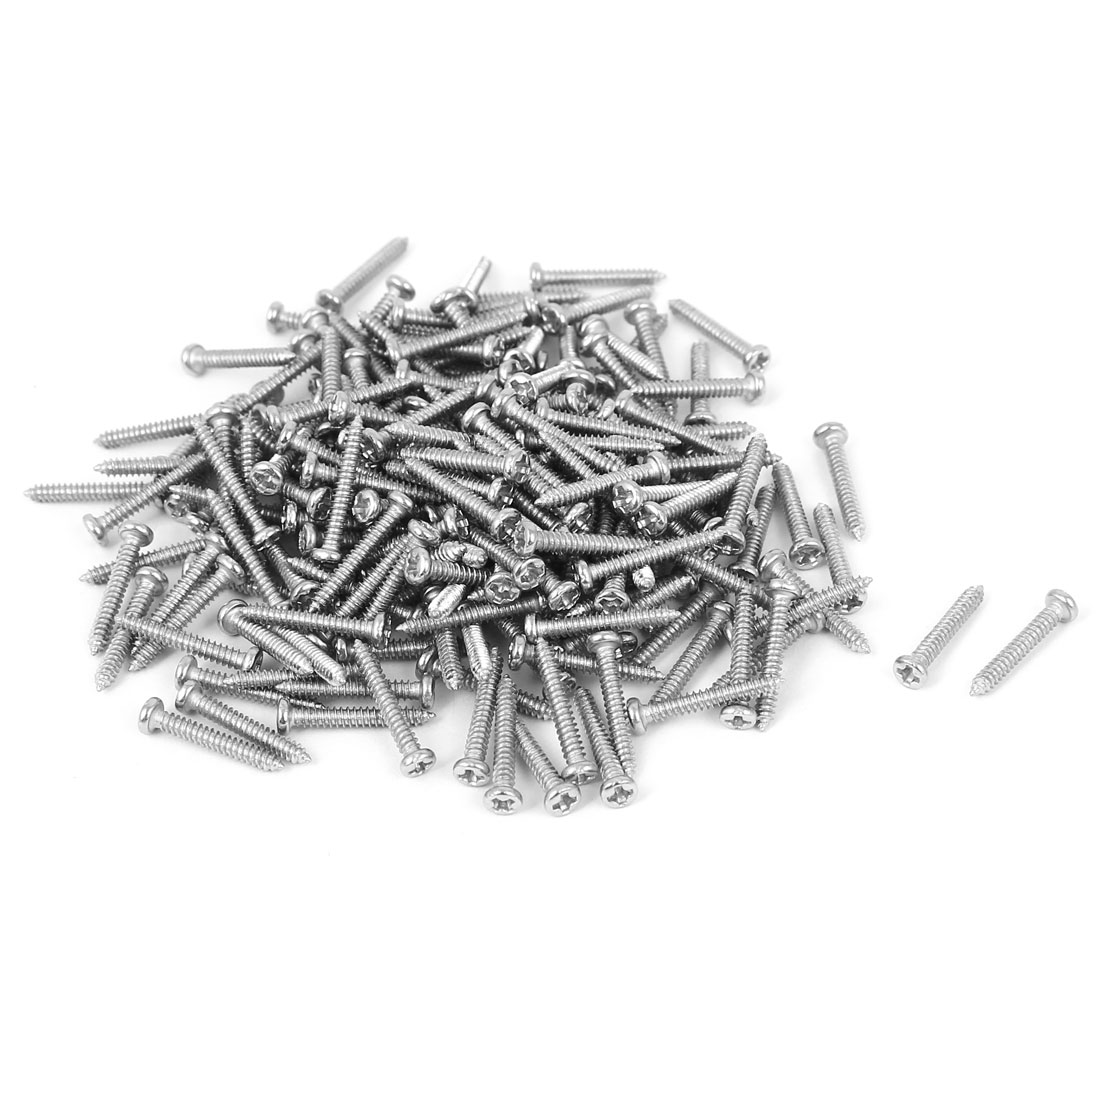 M1.8x12mm Thread Nickel Plated Phillips Round Head Self Tapping Screws 200pcs